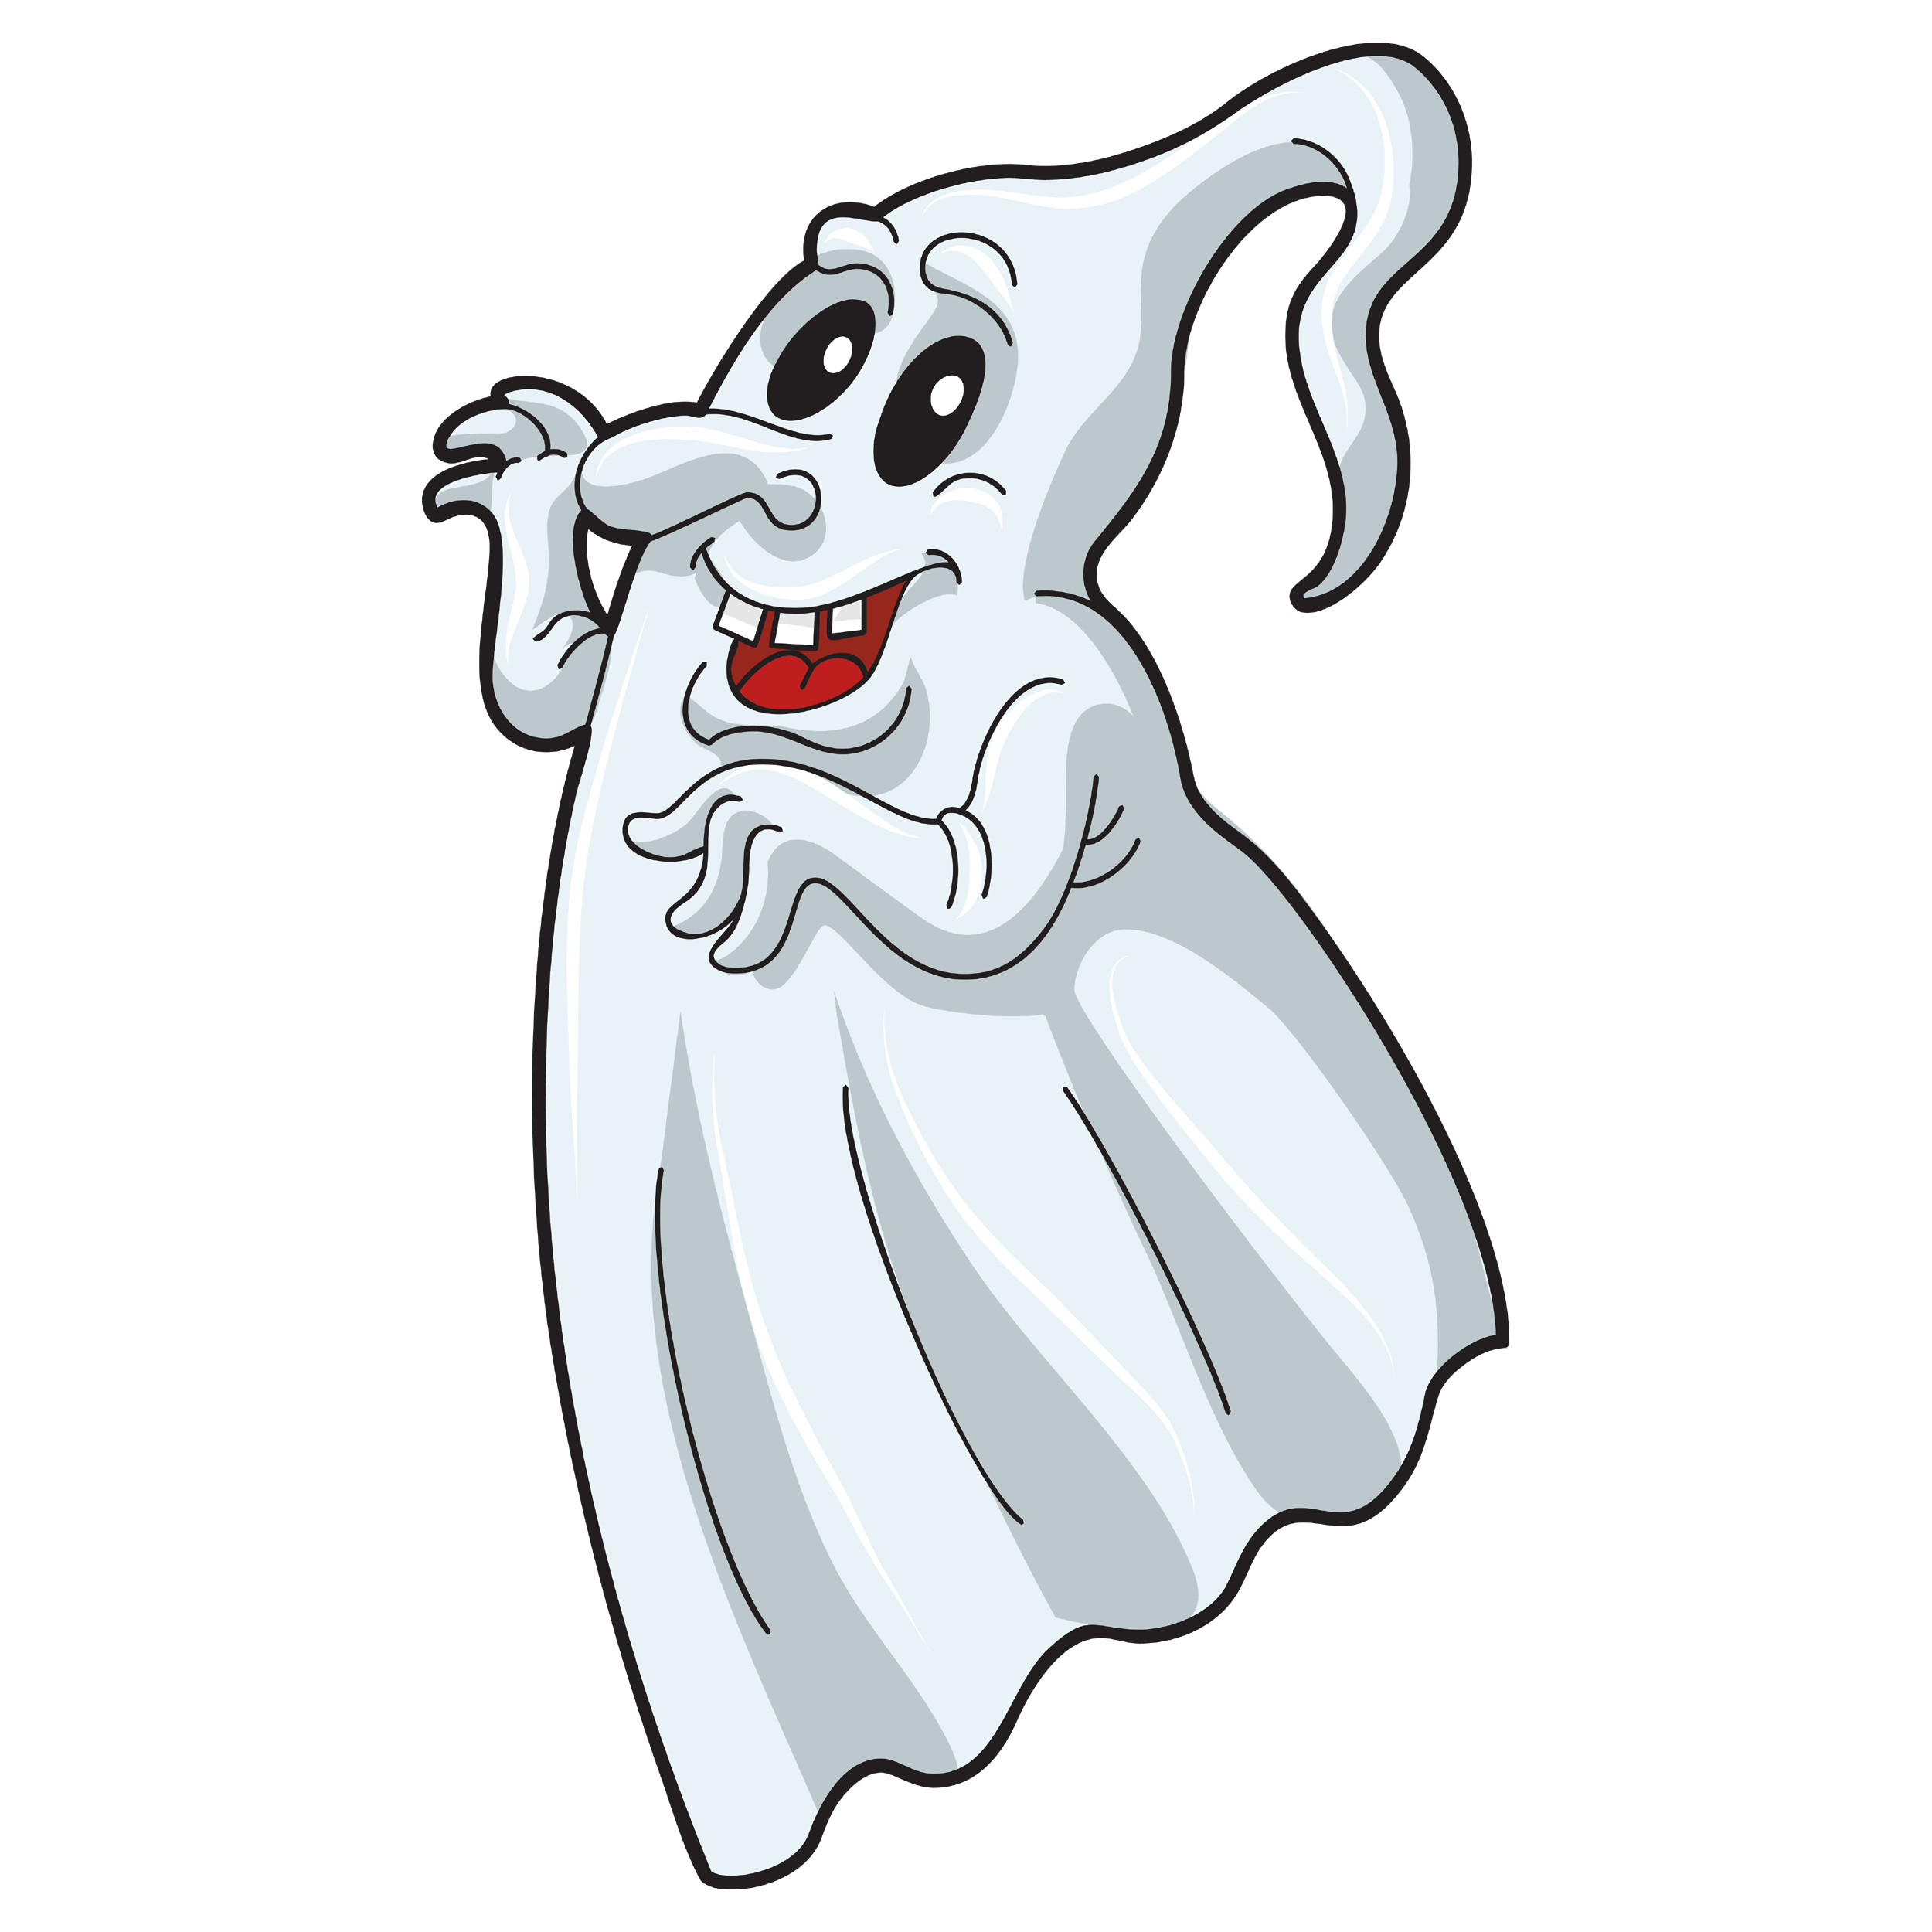 Smiling Ghost Transparent Clipart